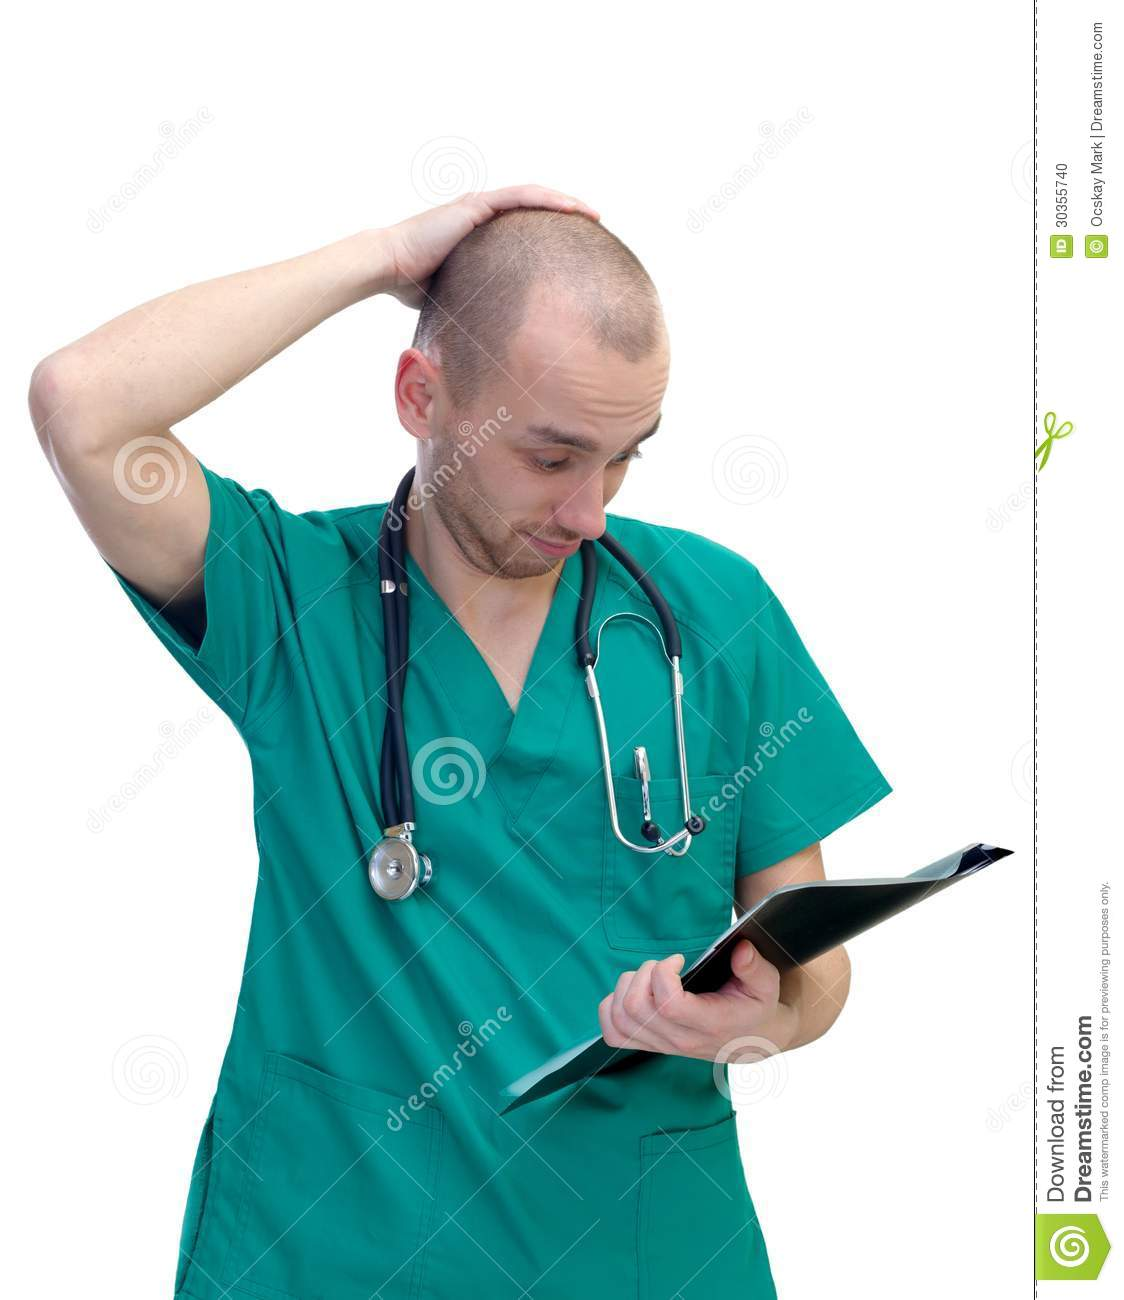 Image result for picture of a confused medical doctor